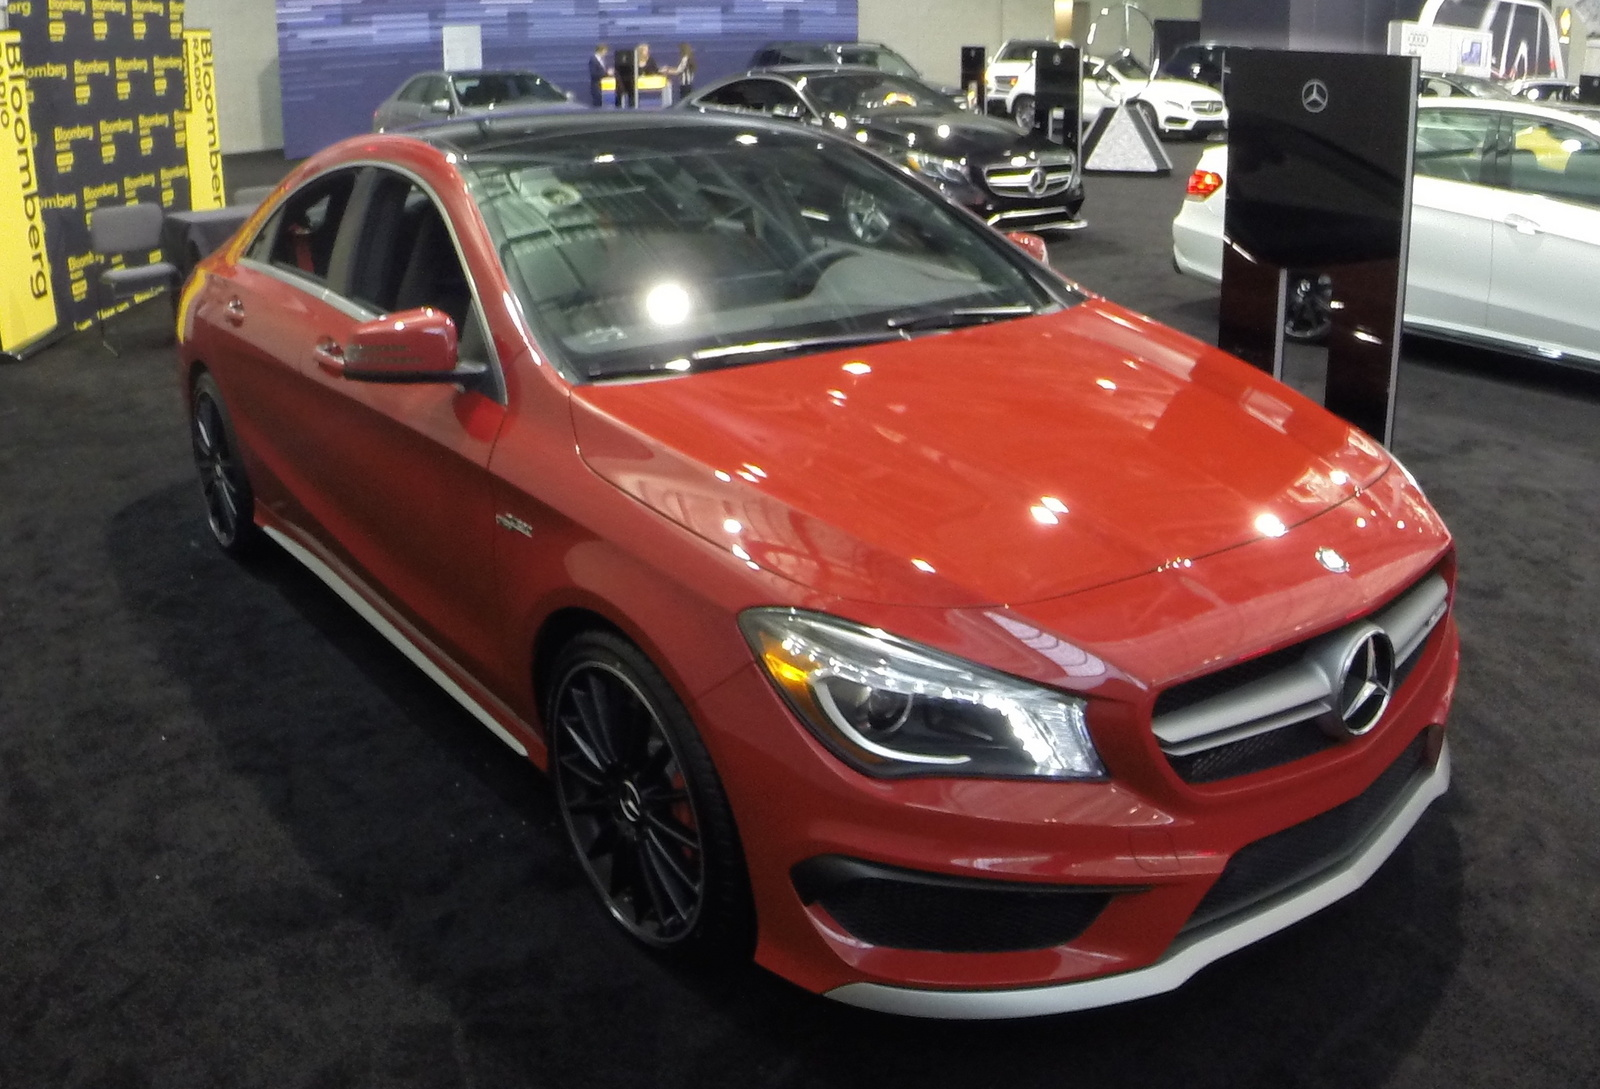 2015 mercedes benz cla class overview cargurus for 2015 mercedes benz cla class